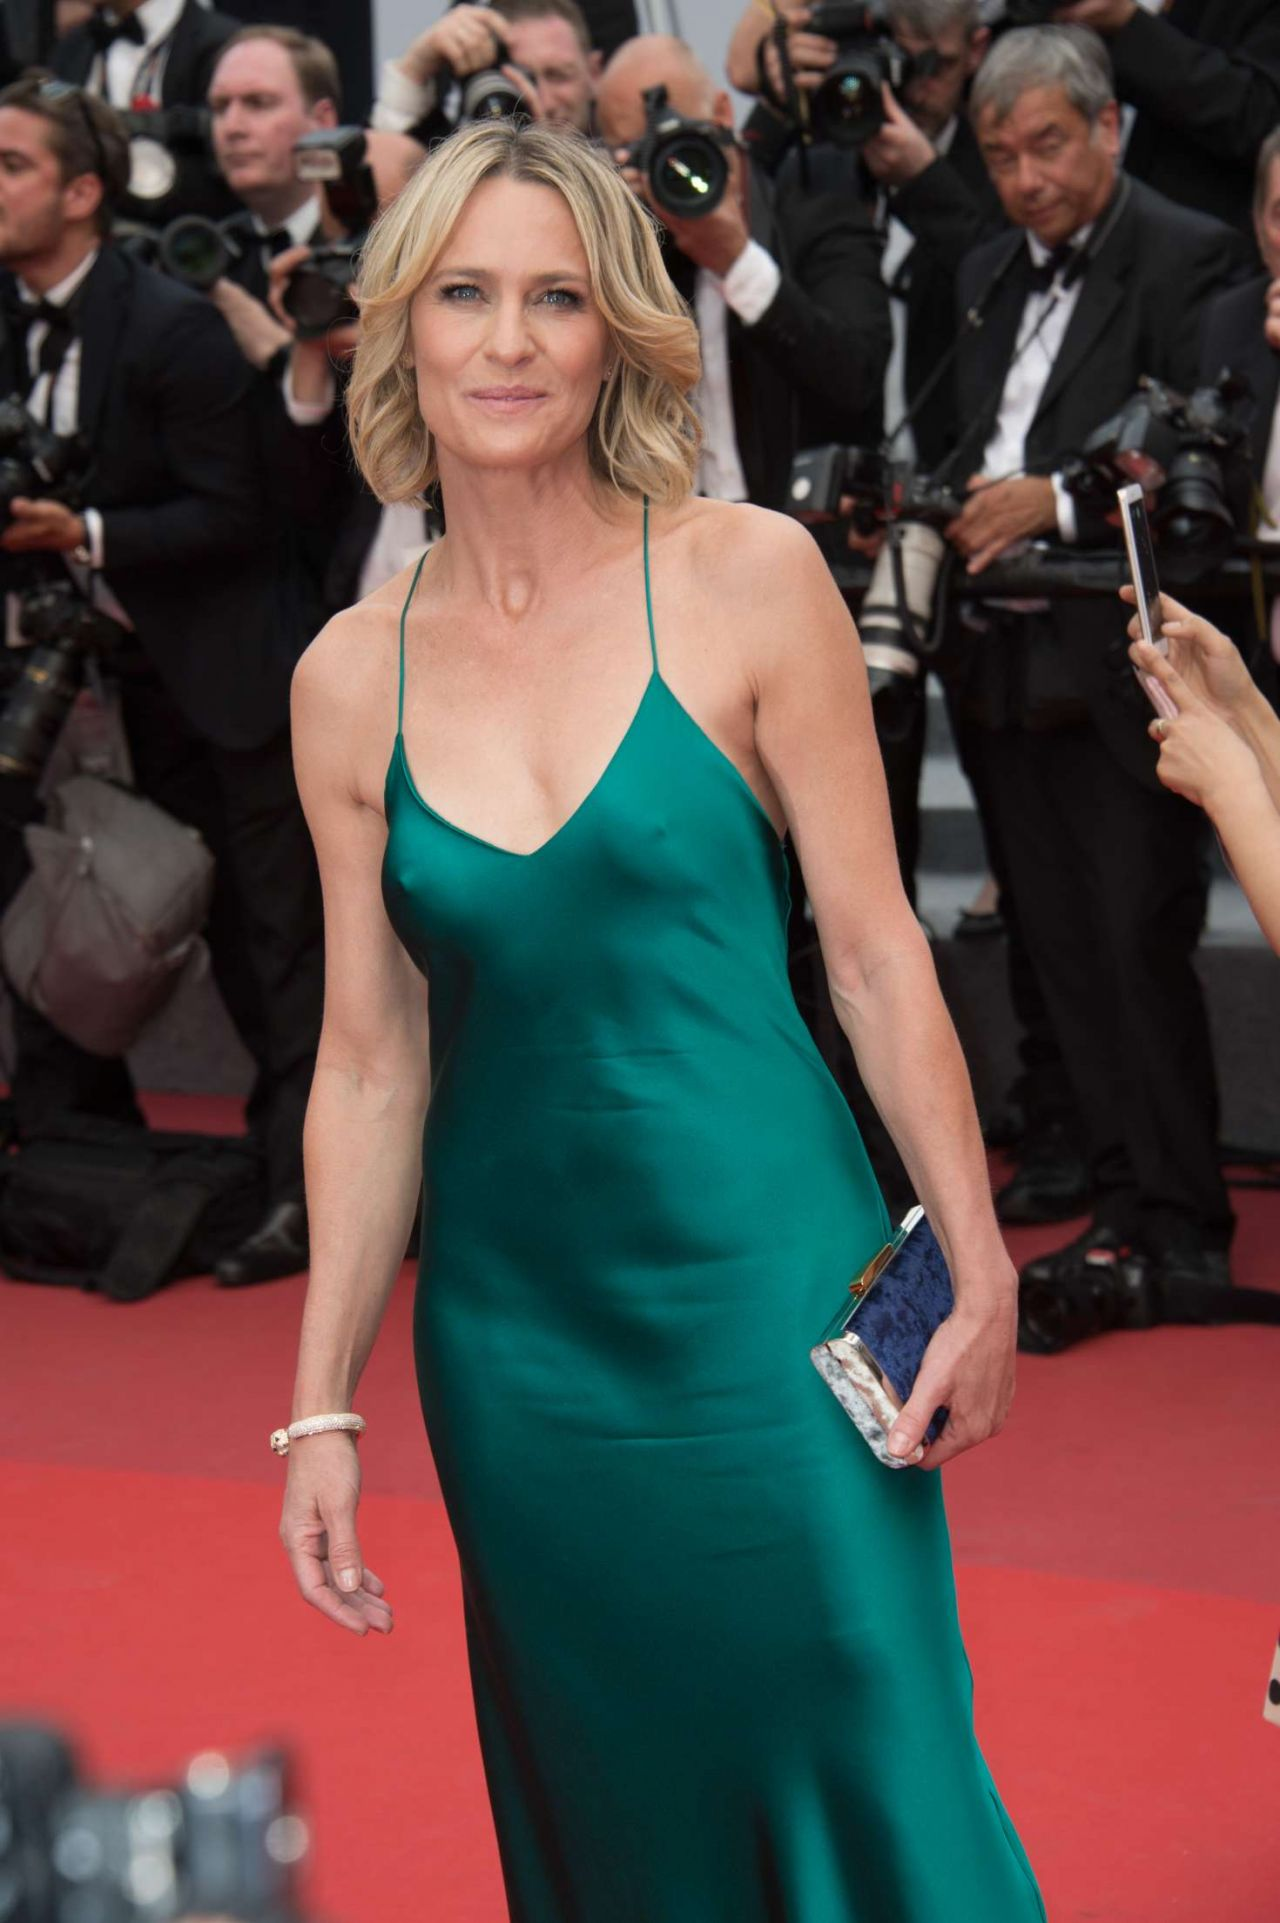 Robin wright loveless nelyubov screening at cannes film festival